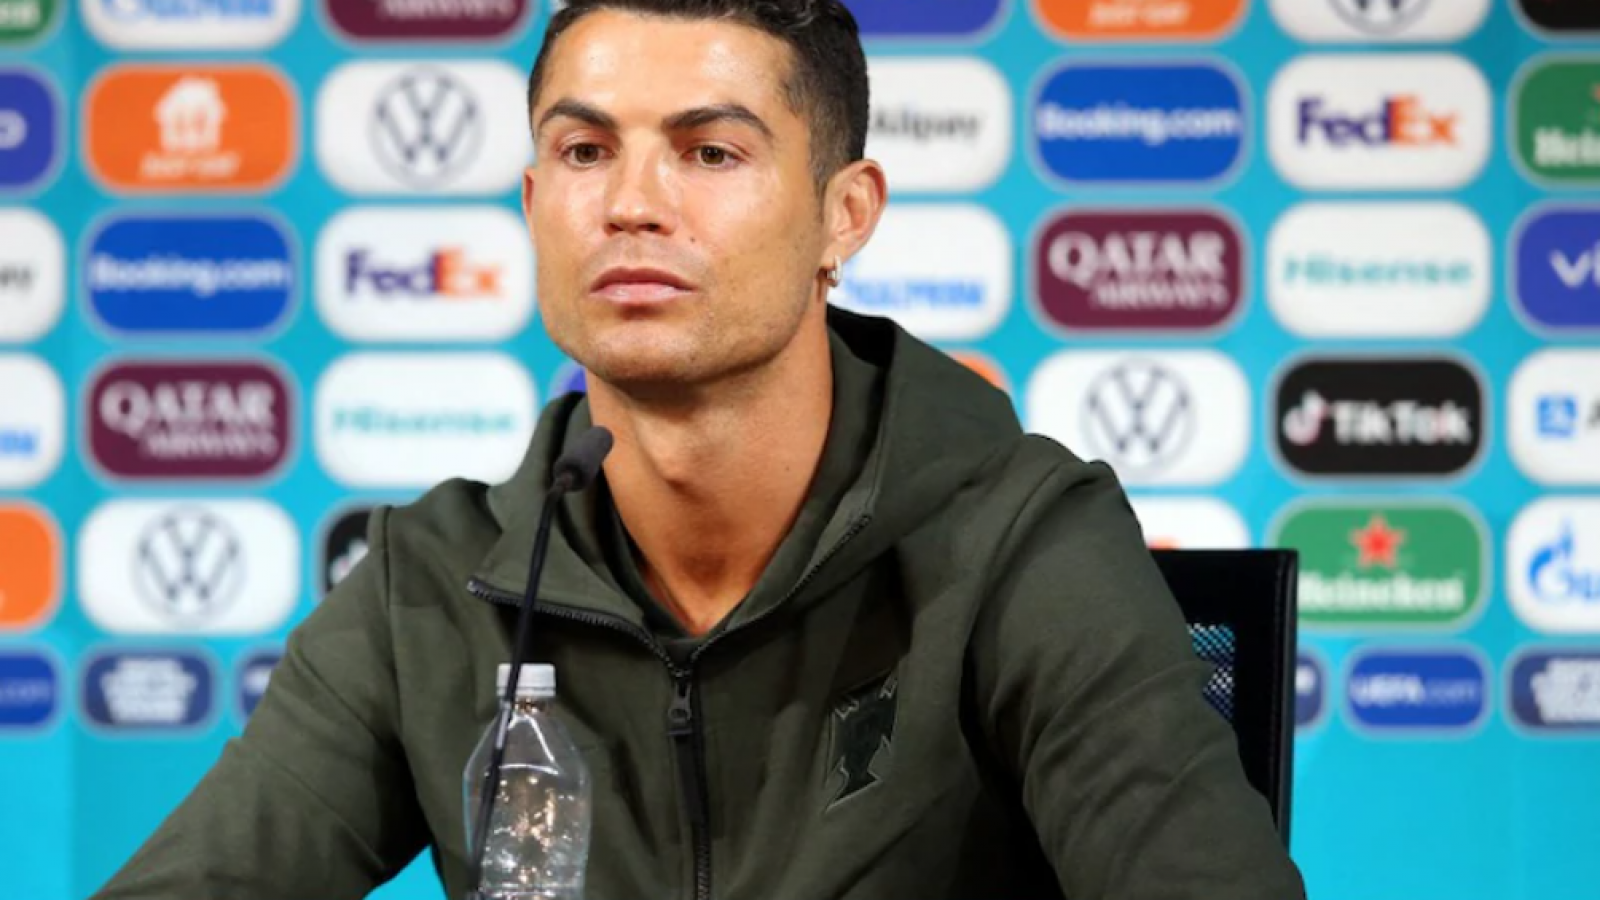 Has Cristiano Ronaldo Just Earned the Status of Most Powerful Celebrity on the Planet